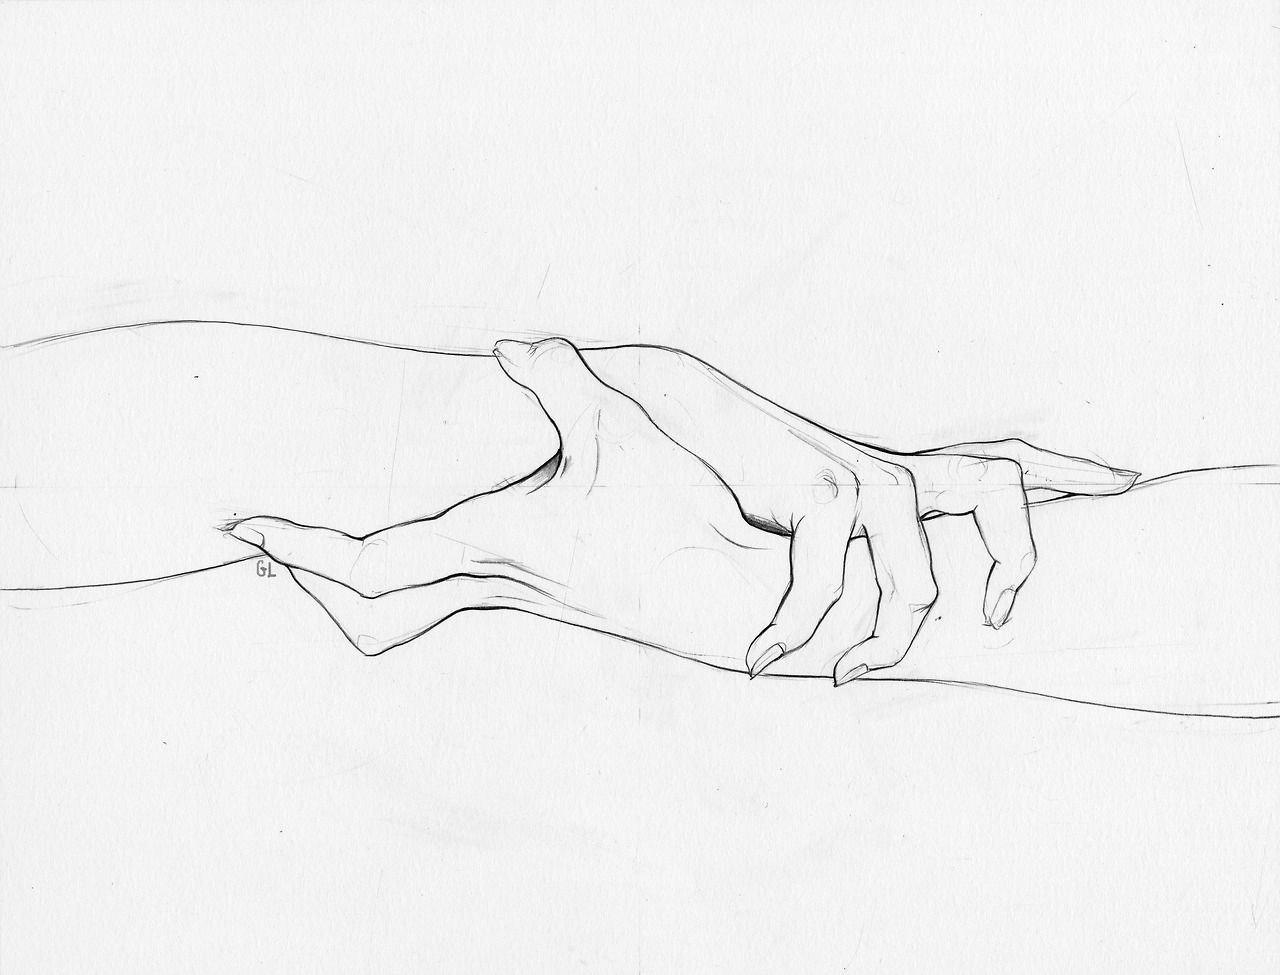 1280x975 Pin By Maria Mndz On Poses Drawings, Sketches And Tattoo